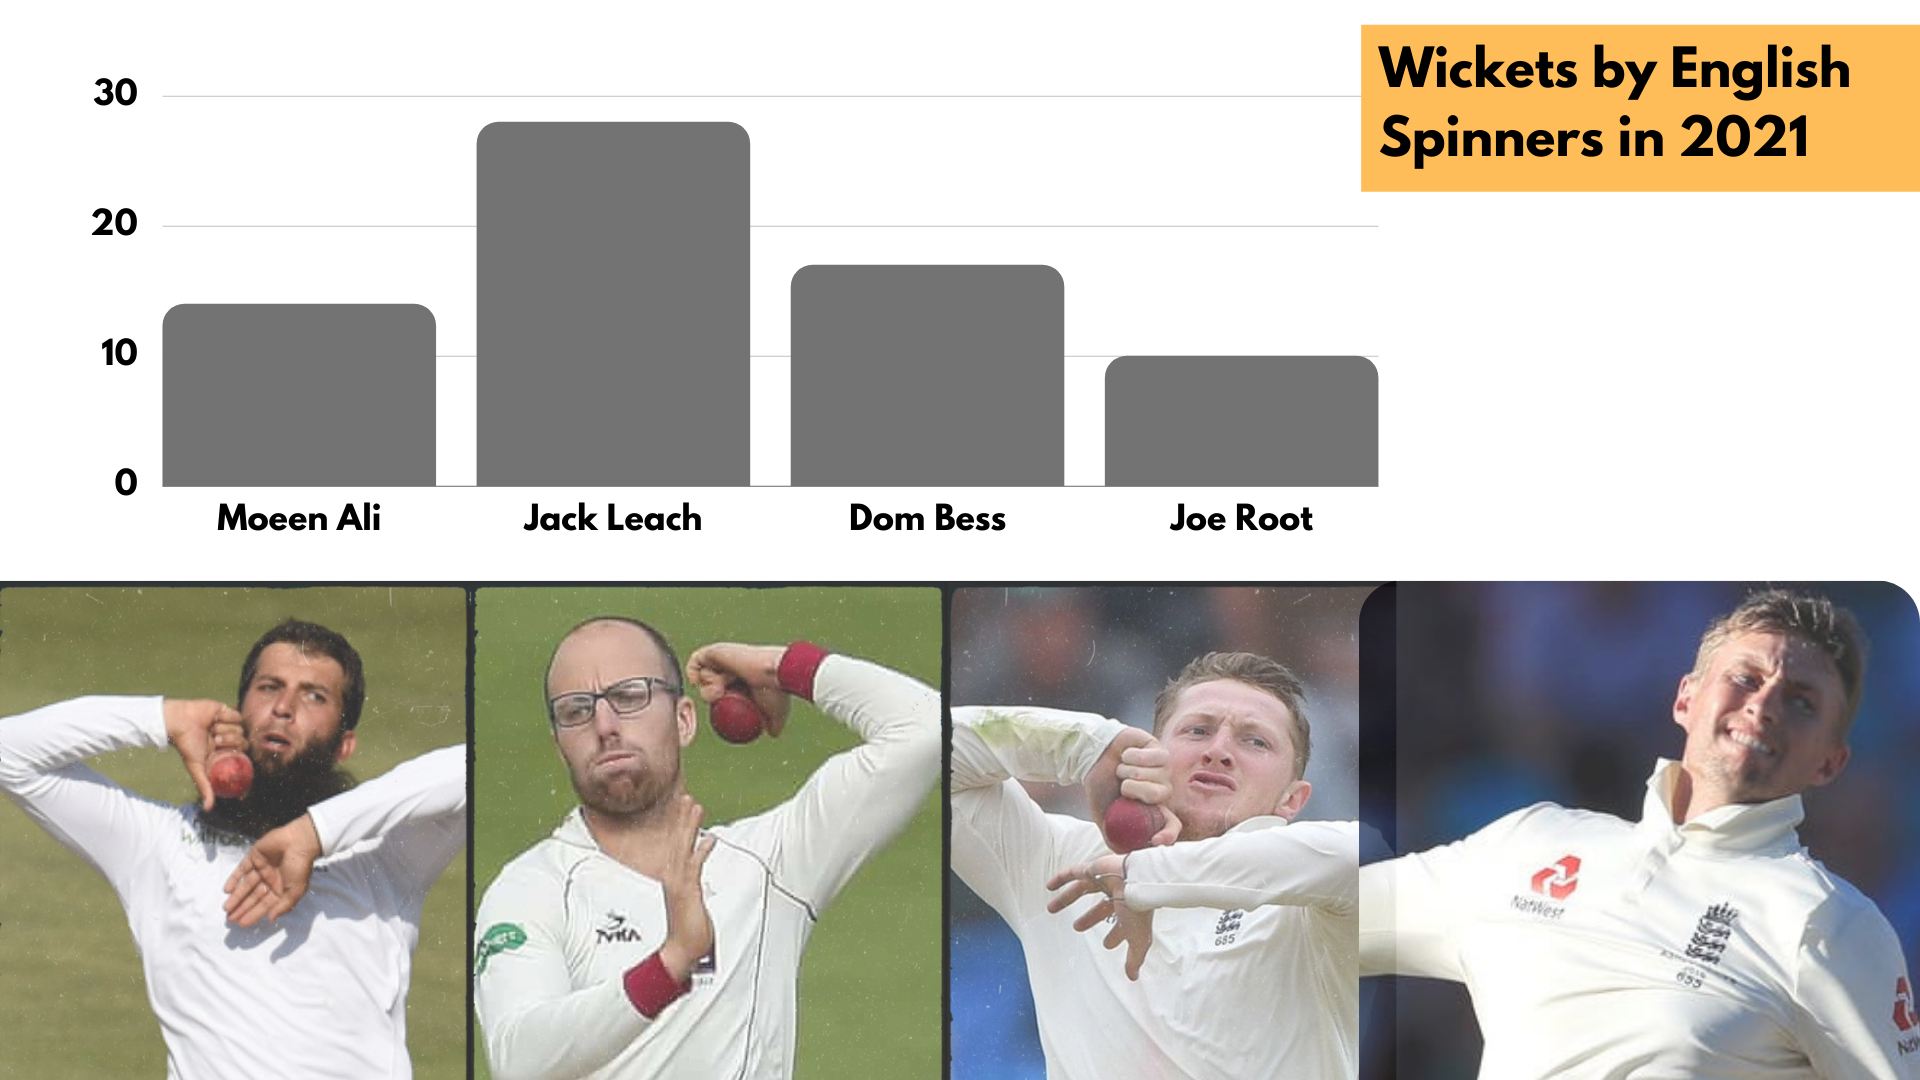 Wickets by English Spinners in 2021 cricket analysis stats